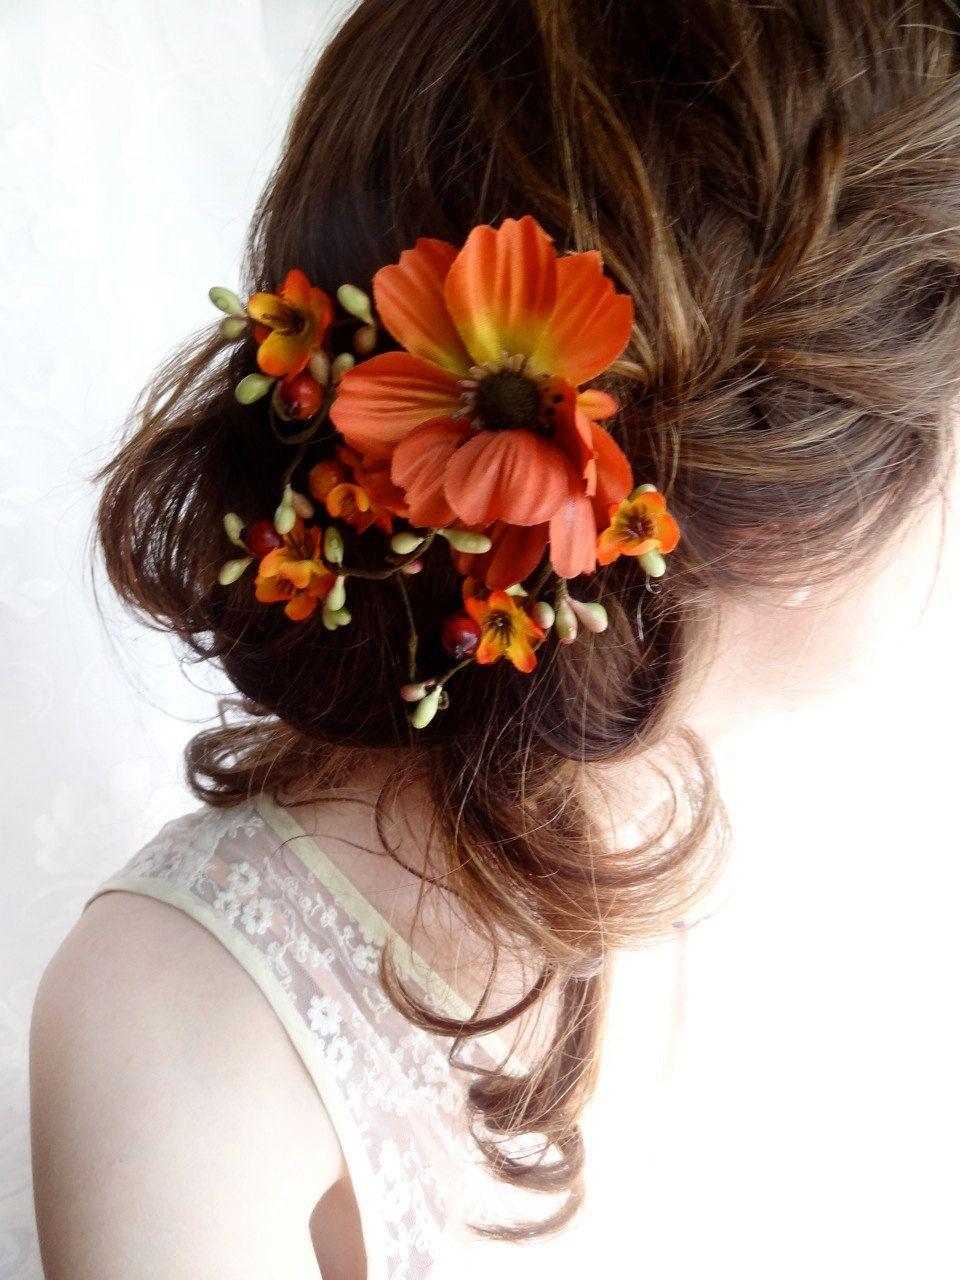 Butterfly hair accessories for weddings uk - Fall Wedding Hair Clip Autumn Wedding Fall Flower Hair Accessory Orange Flower Wildwood Rustic Wedding Hairpiece Bridal Hair Flower